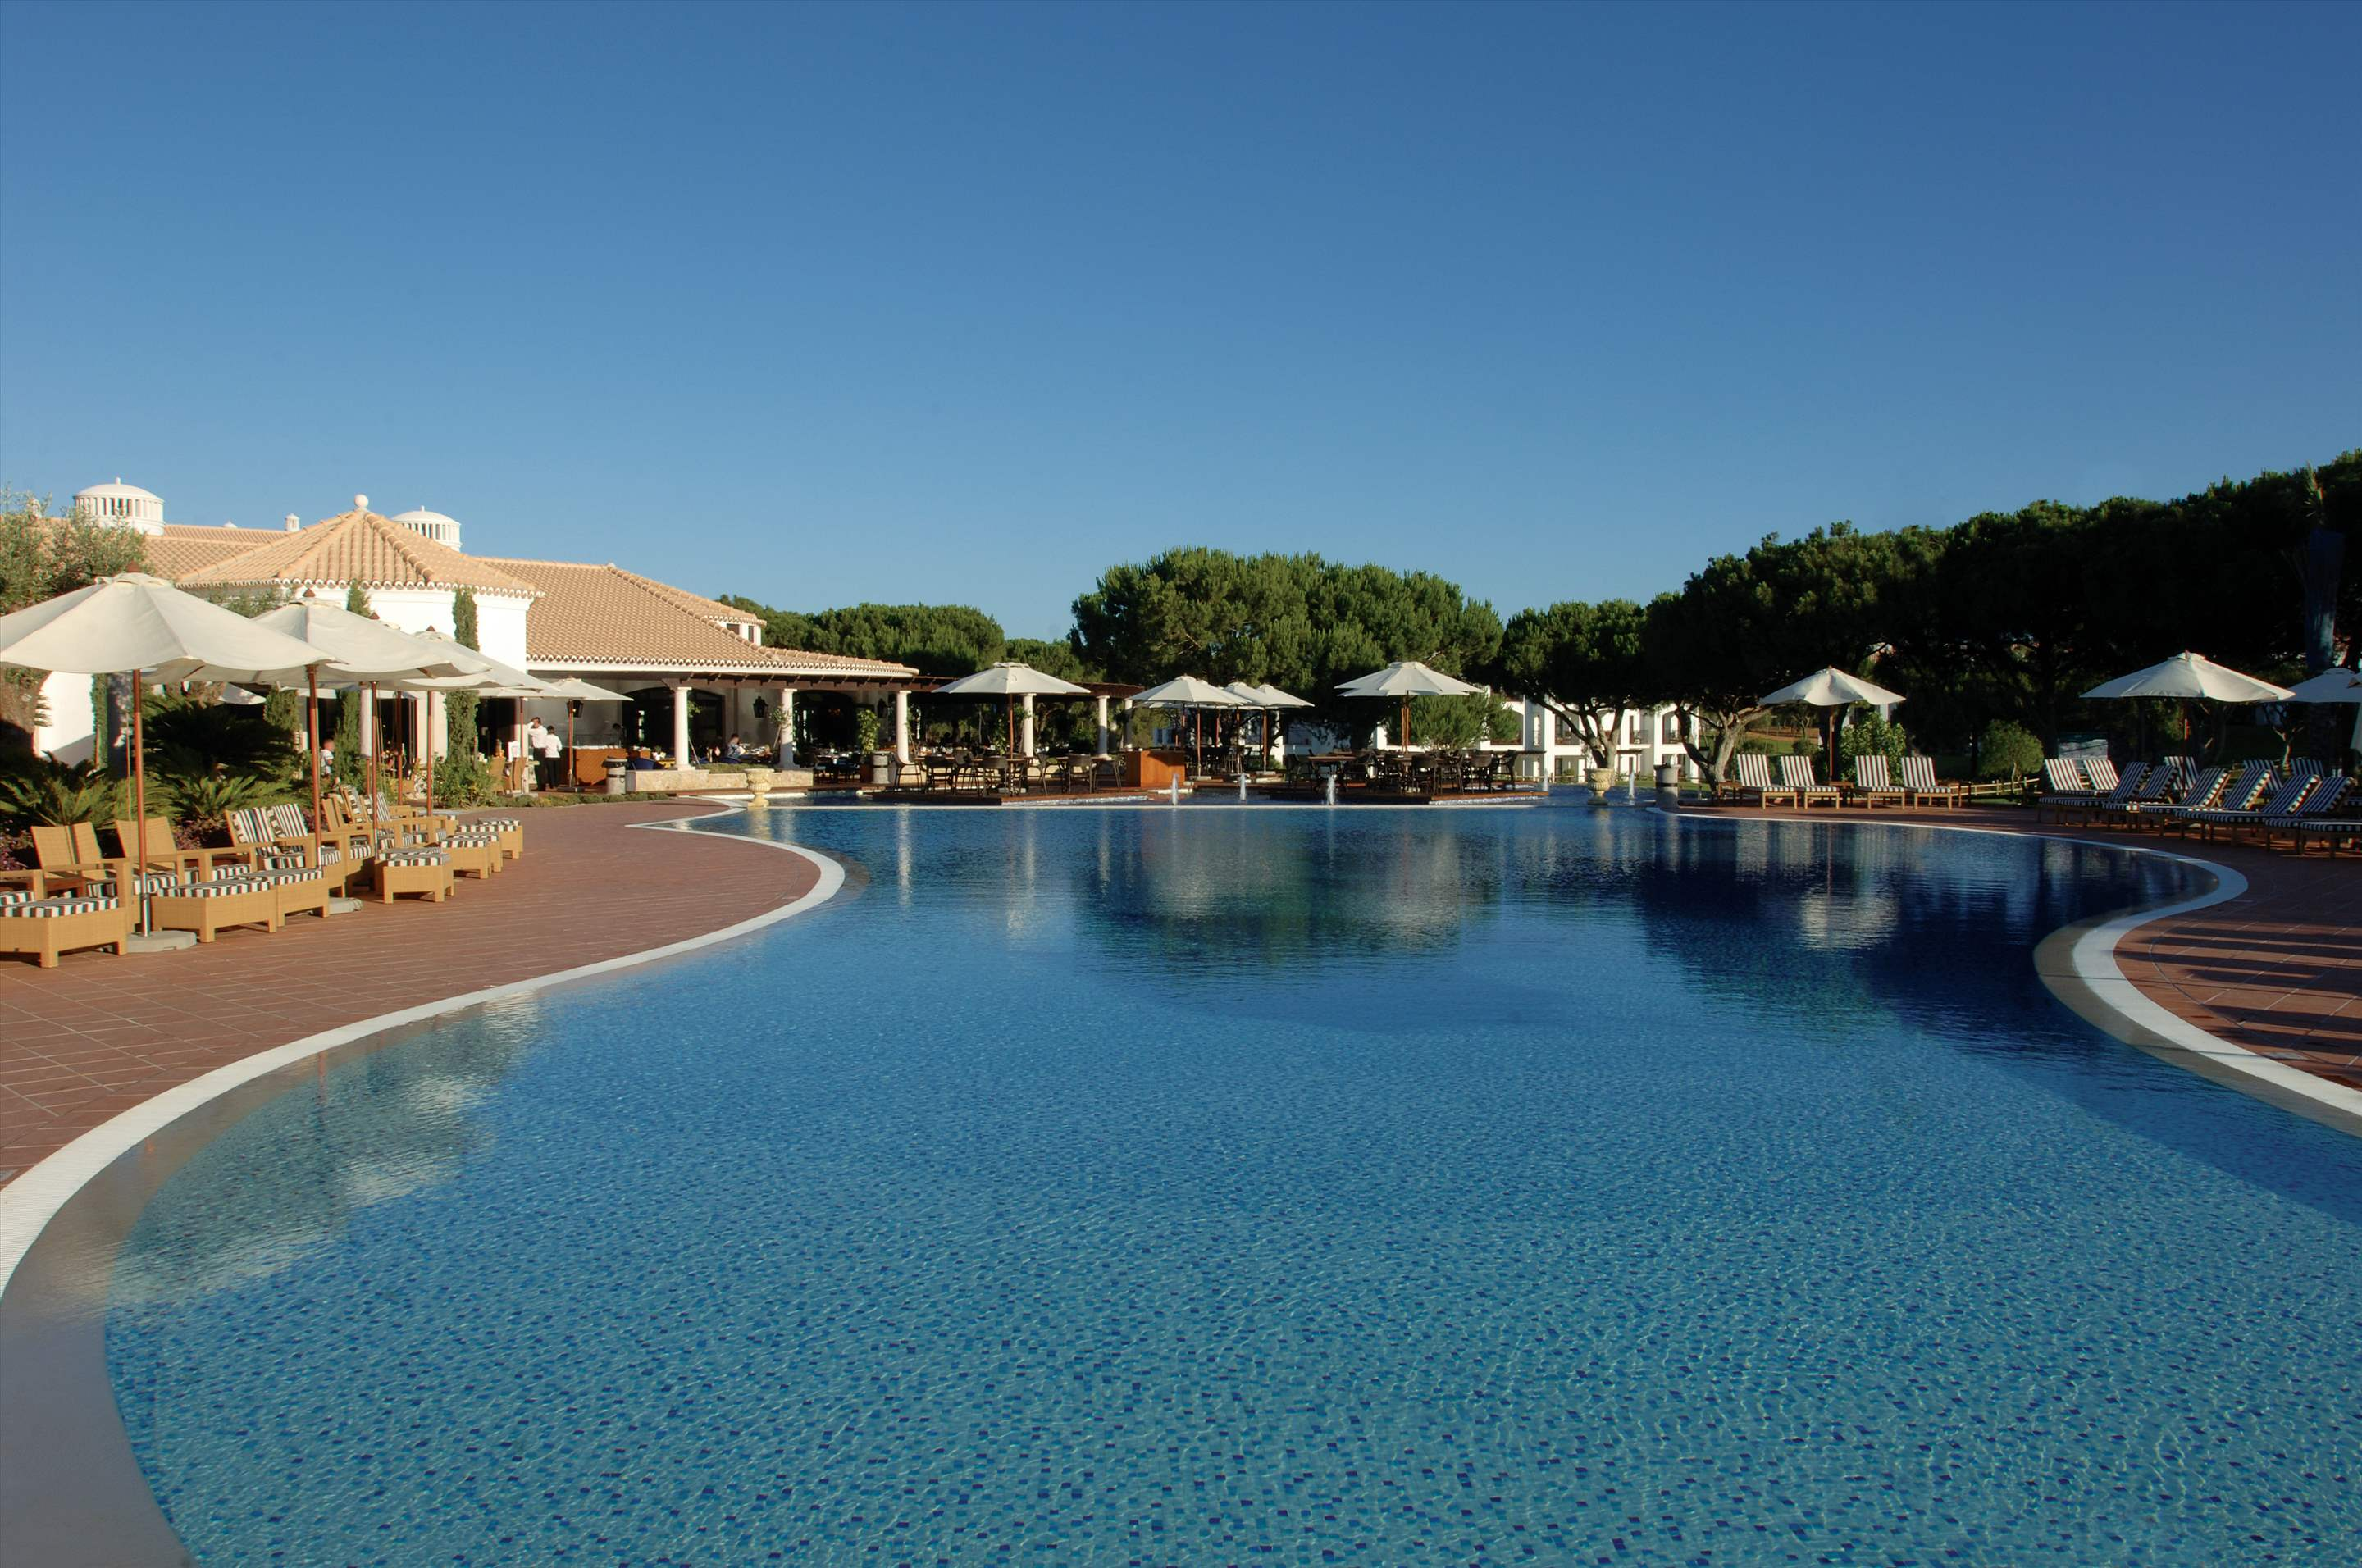 Pine Cliffs Terraces, 4 Bedroom, room only basis, 4 bedroom villa in Pine Cliffs Resort, Algarve Photo #33